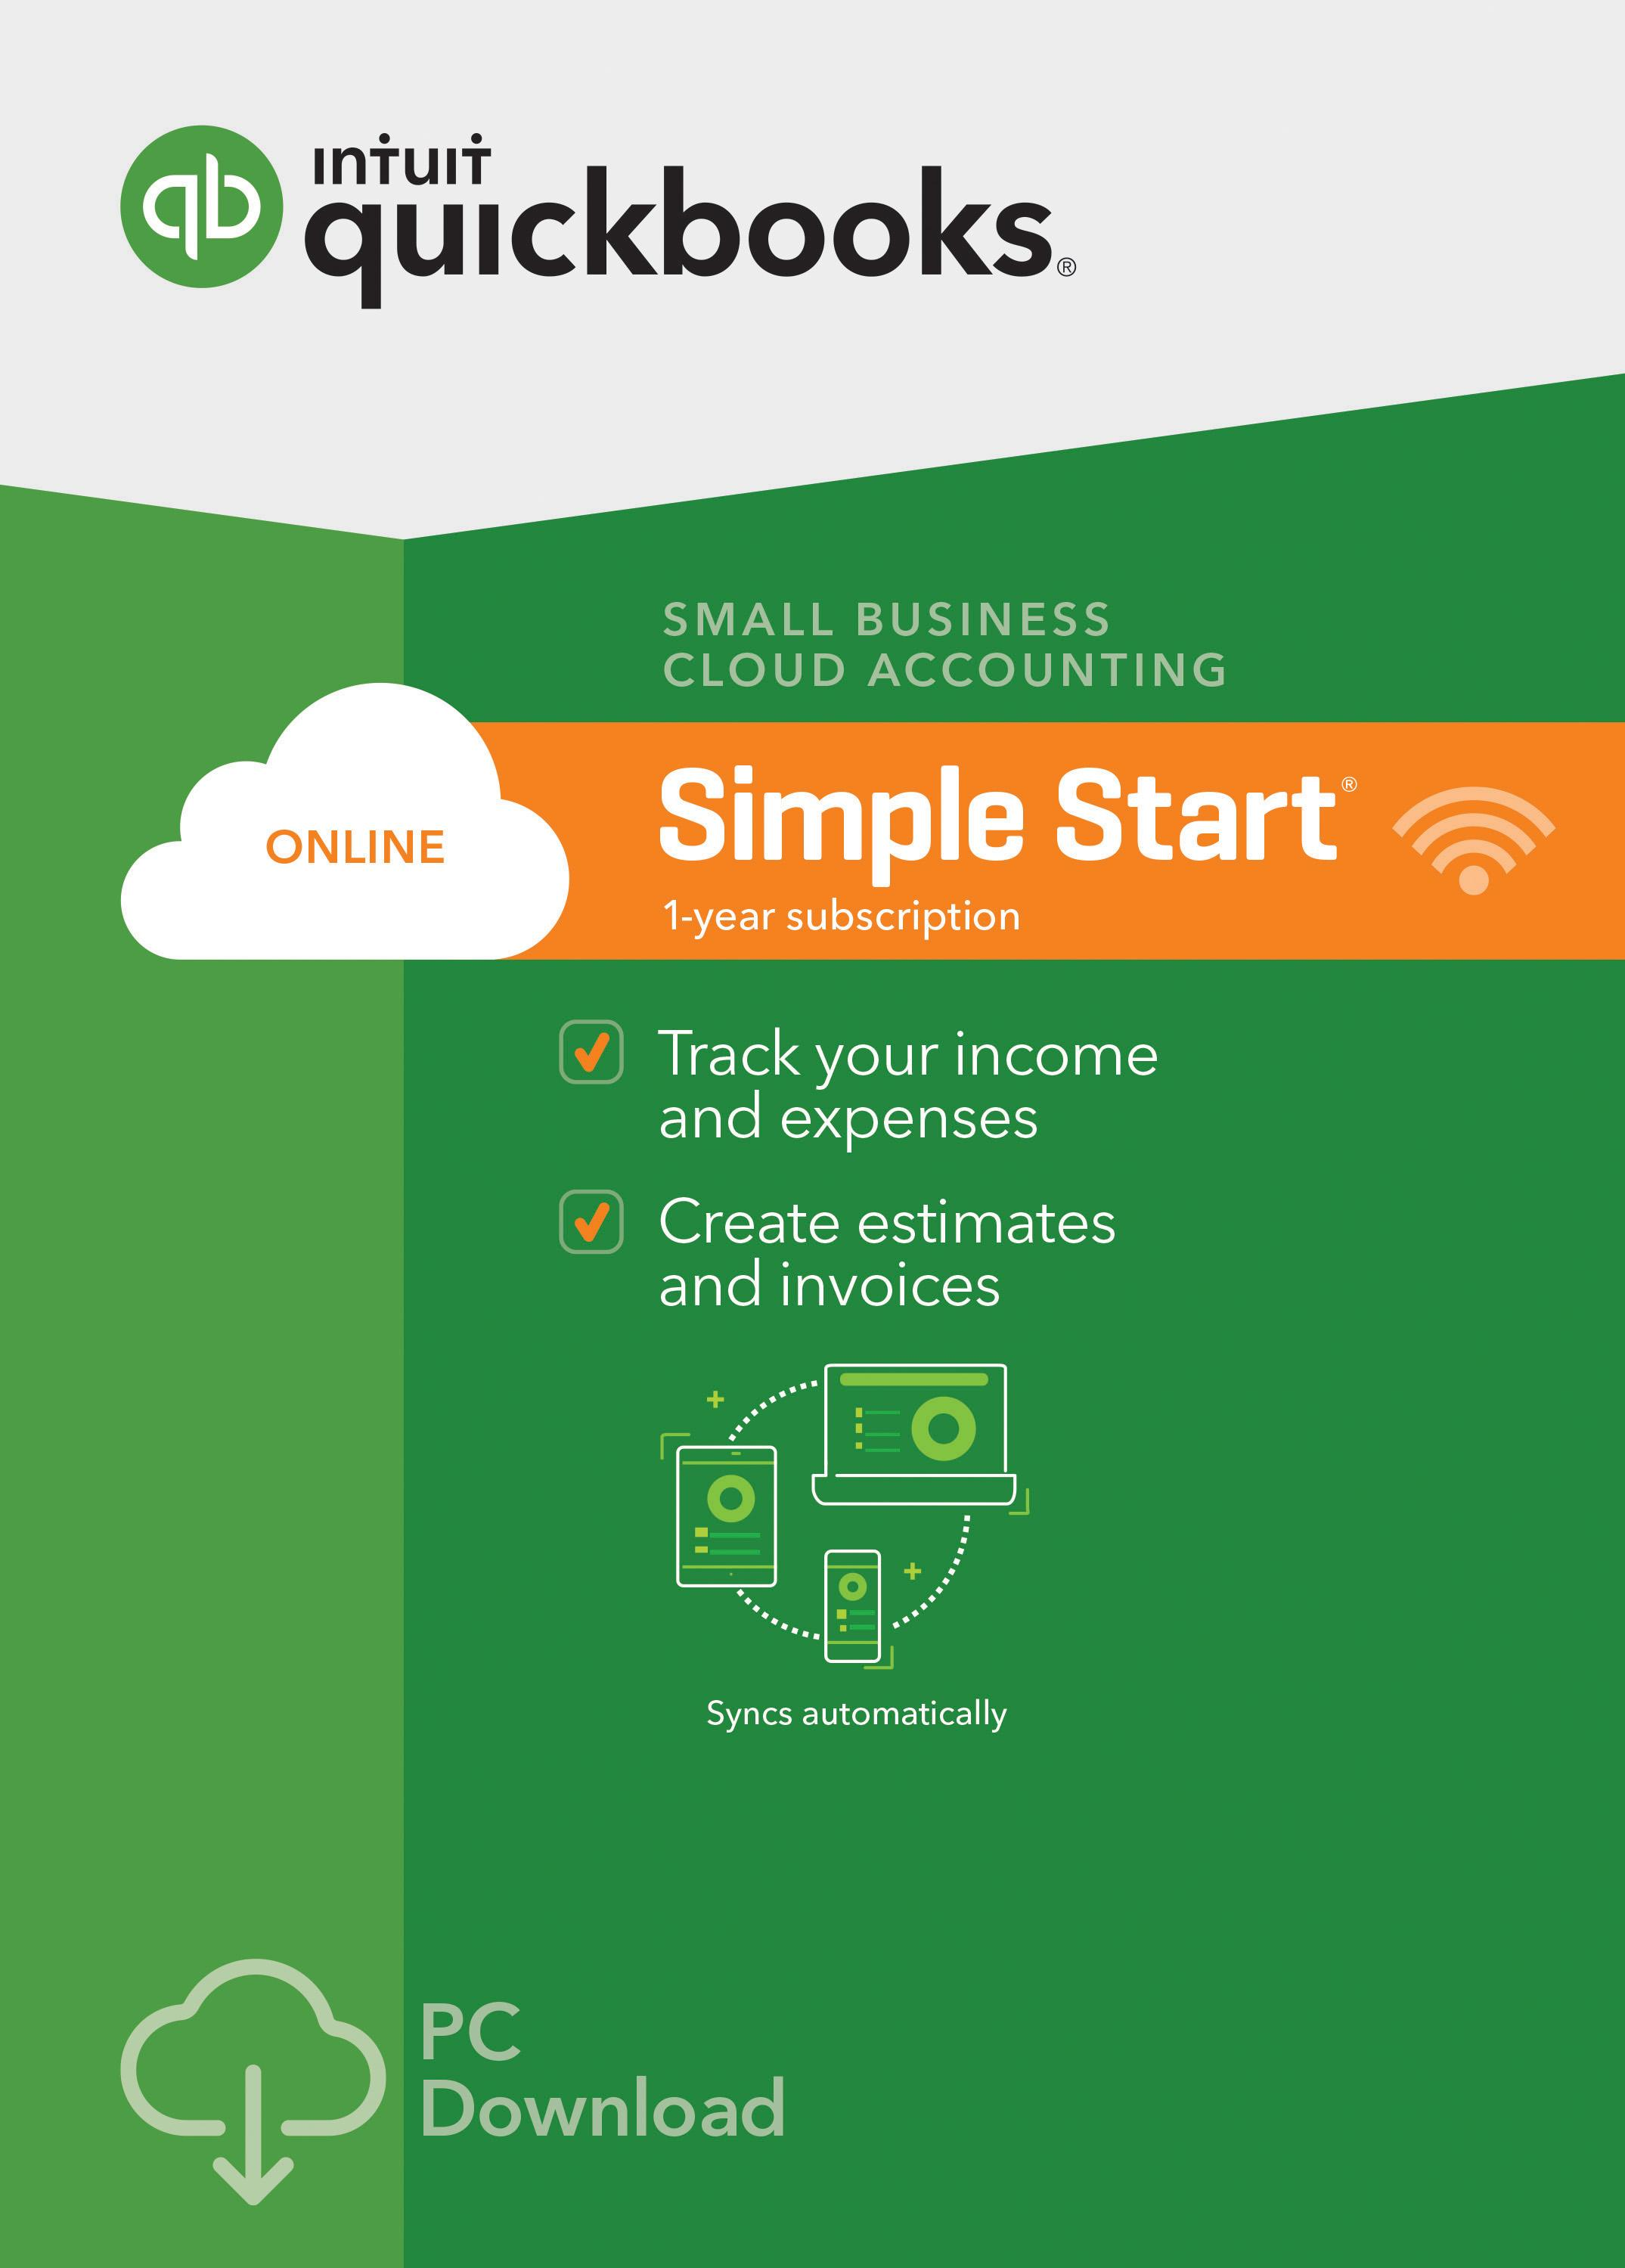 Amazoncom QuickBooks Online Simple Start Small Business - How to create an invoice in quickbooks best online women's clothing stores